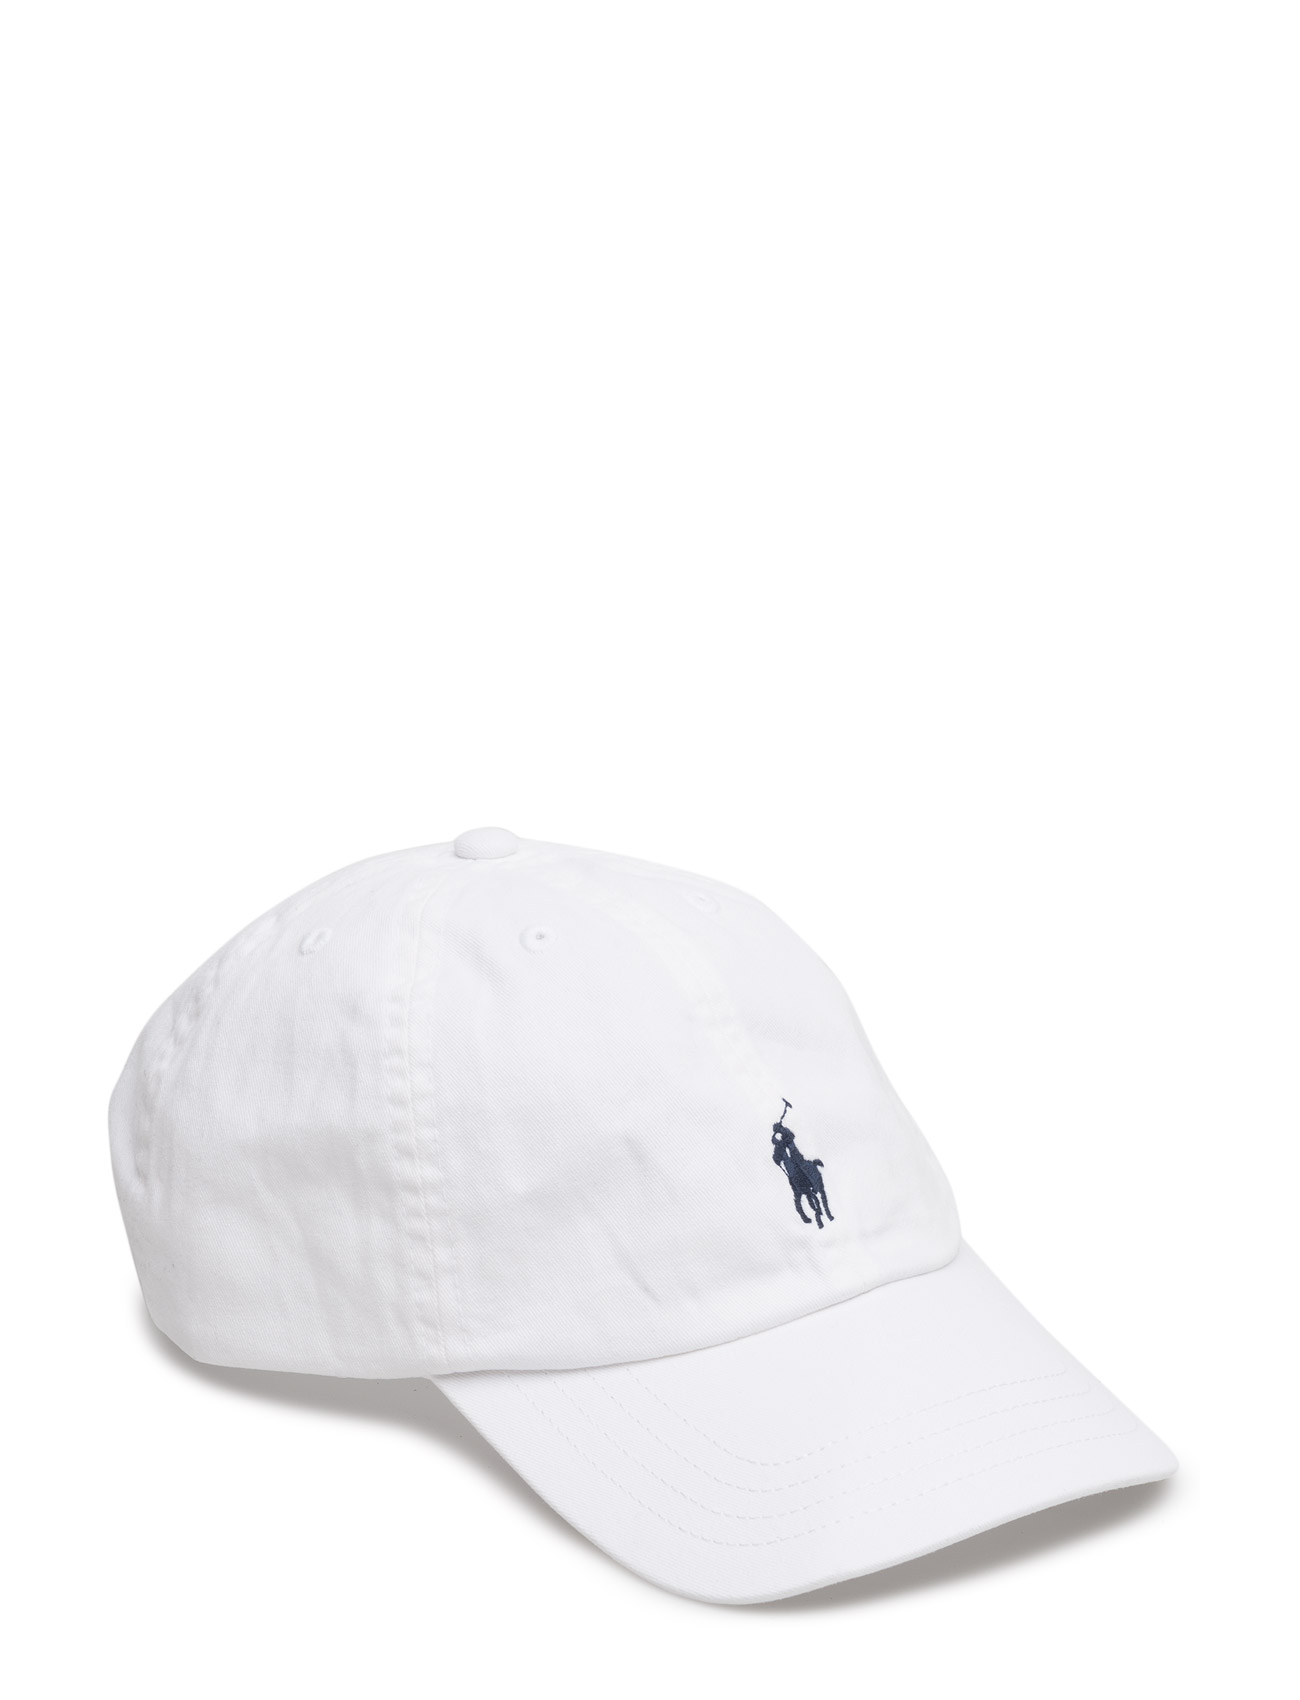 Classic Pony Baseball Cap (White) (£27) - Ralph Lauren Kids ... bf4b668be6a